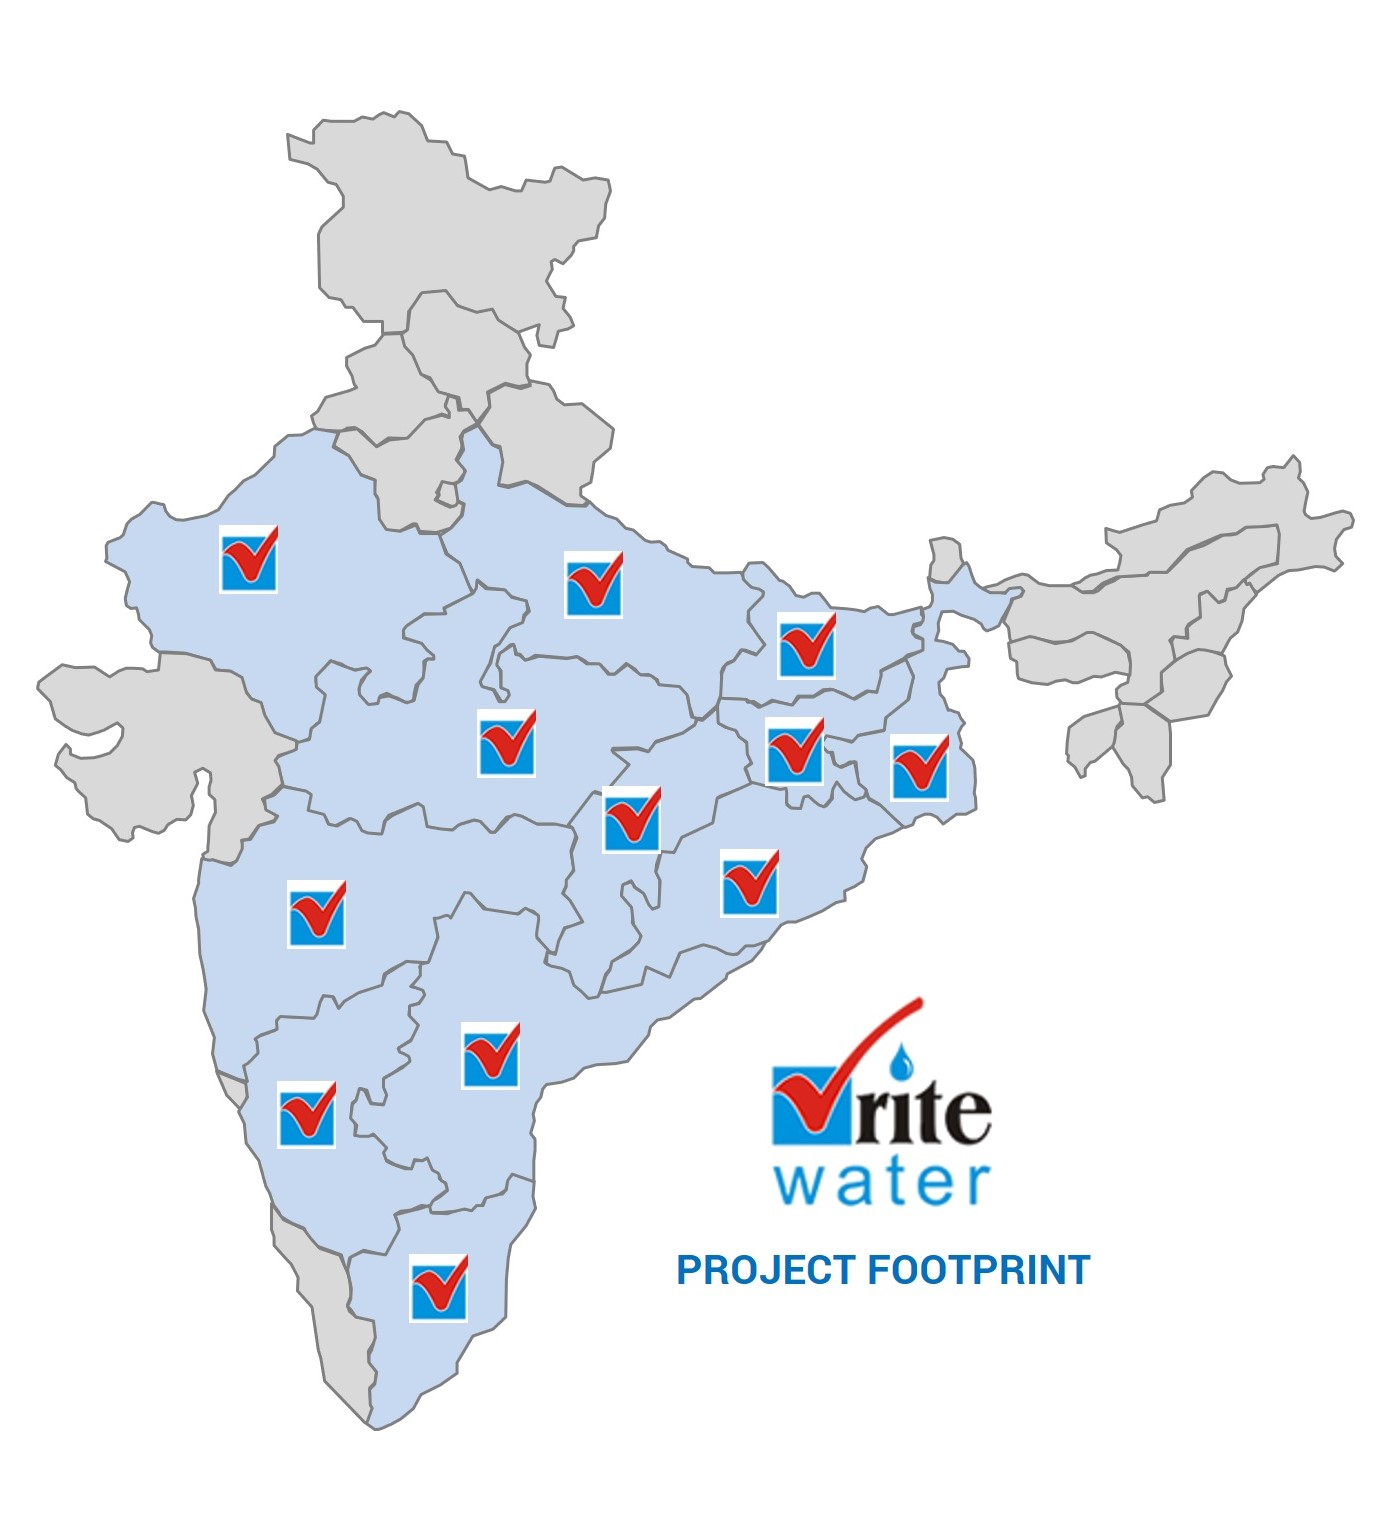 Project Footprint